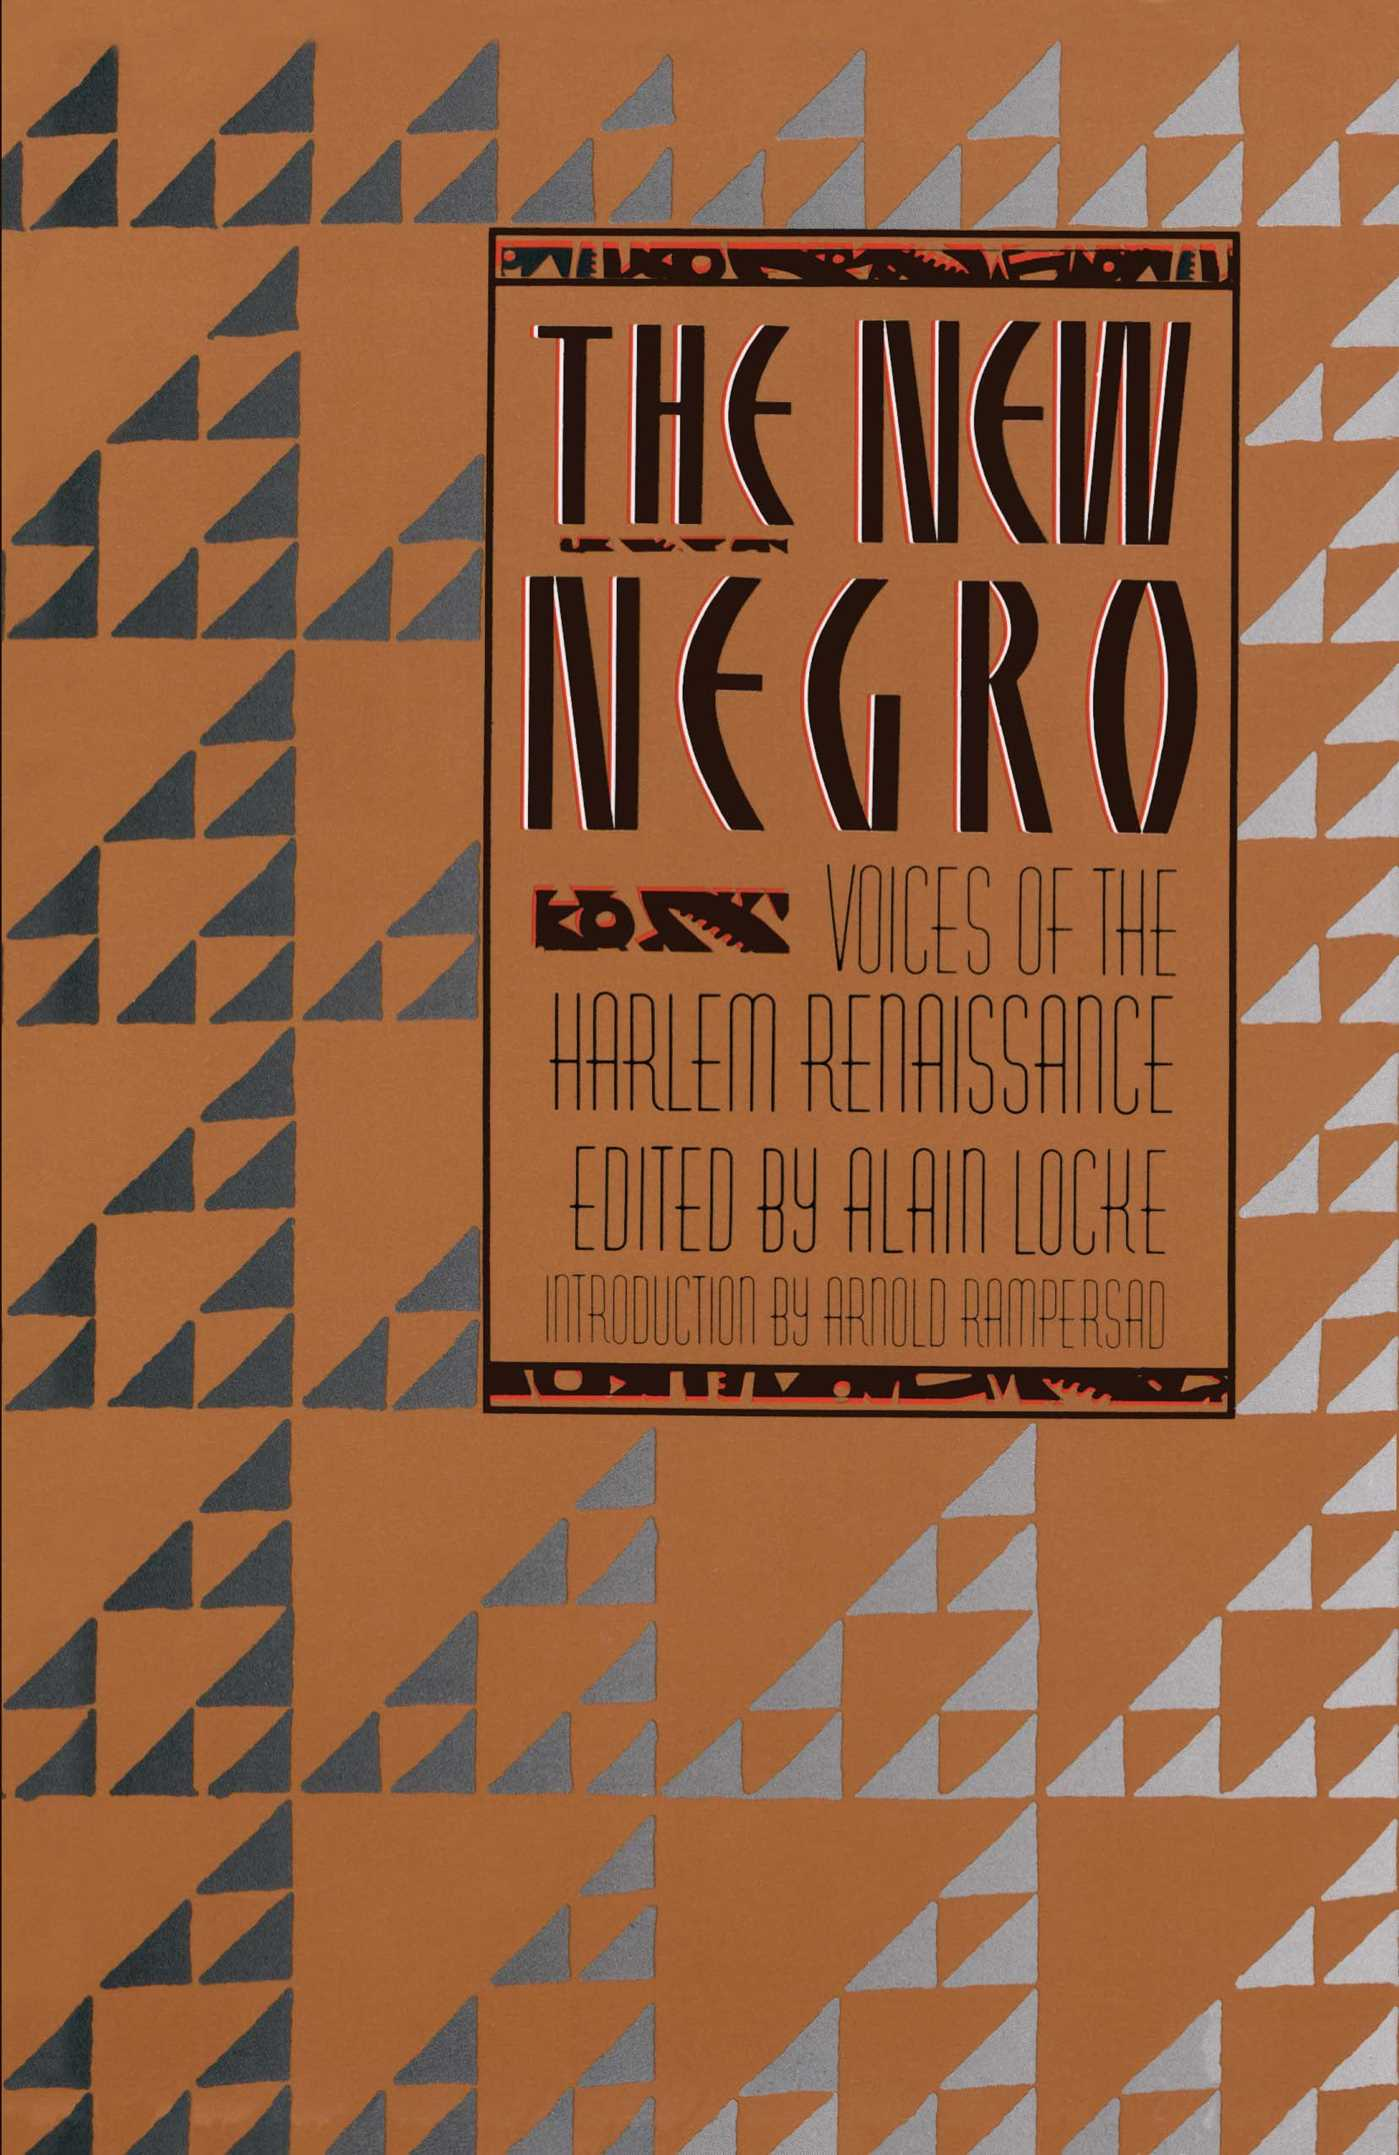 The New Negro | Book by Alain Locke | Official Publisher ...